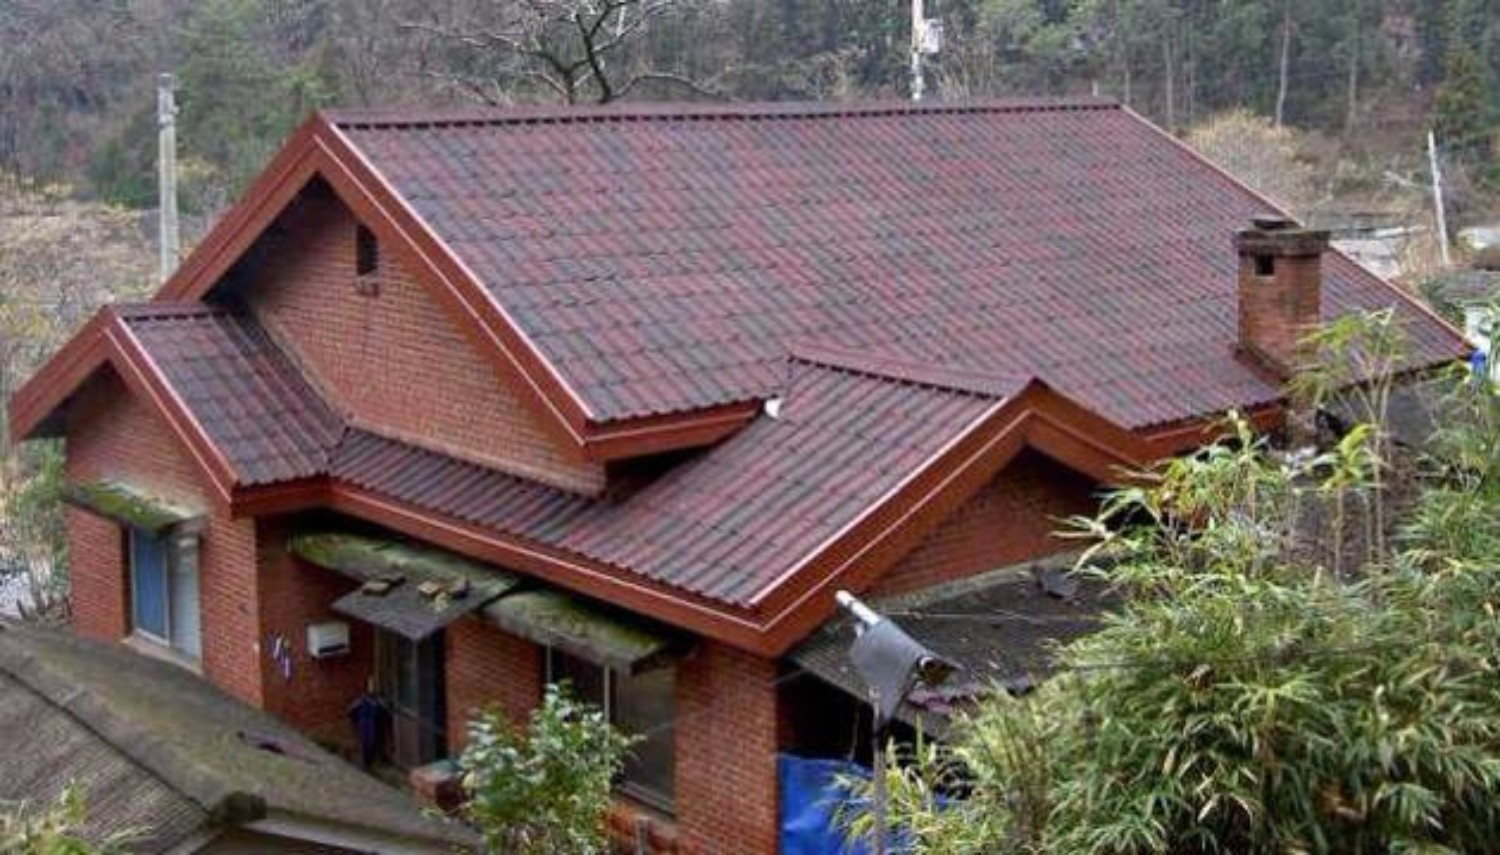 Onduvilla Bitumen Roof Tiles Shaded Brown 2 18 M2